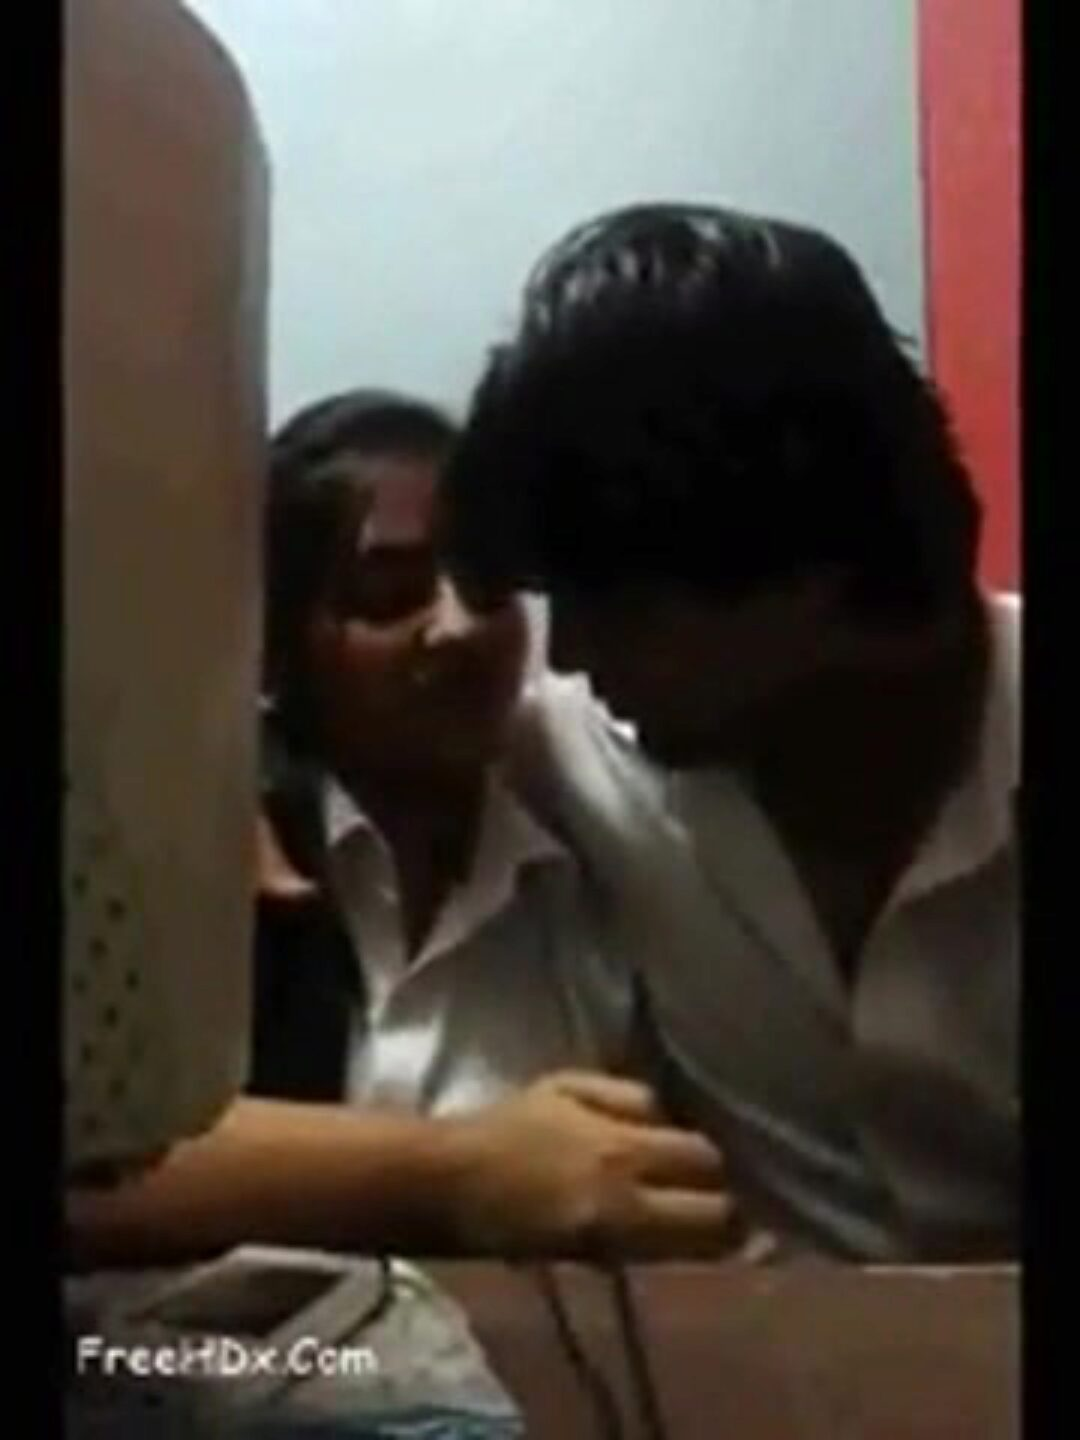 Desi couple lovemaking in cyber cafe Desi pair milk shakes pressing and fingerblasting in cyber cafe